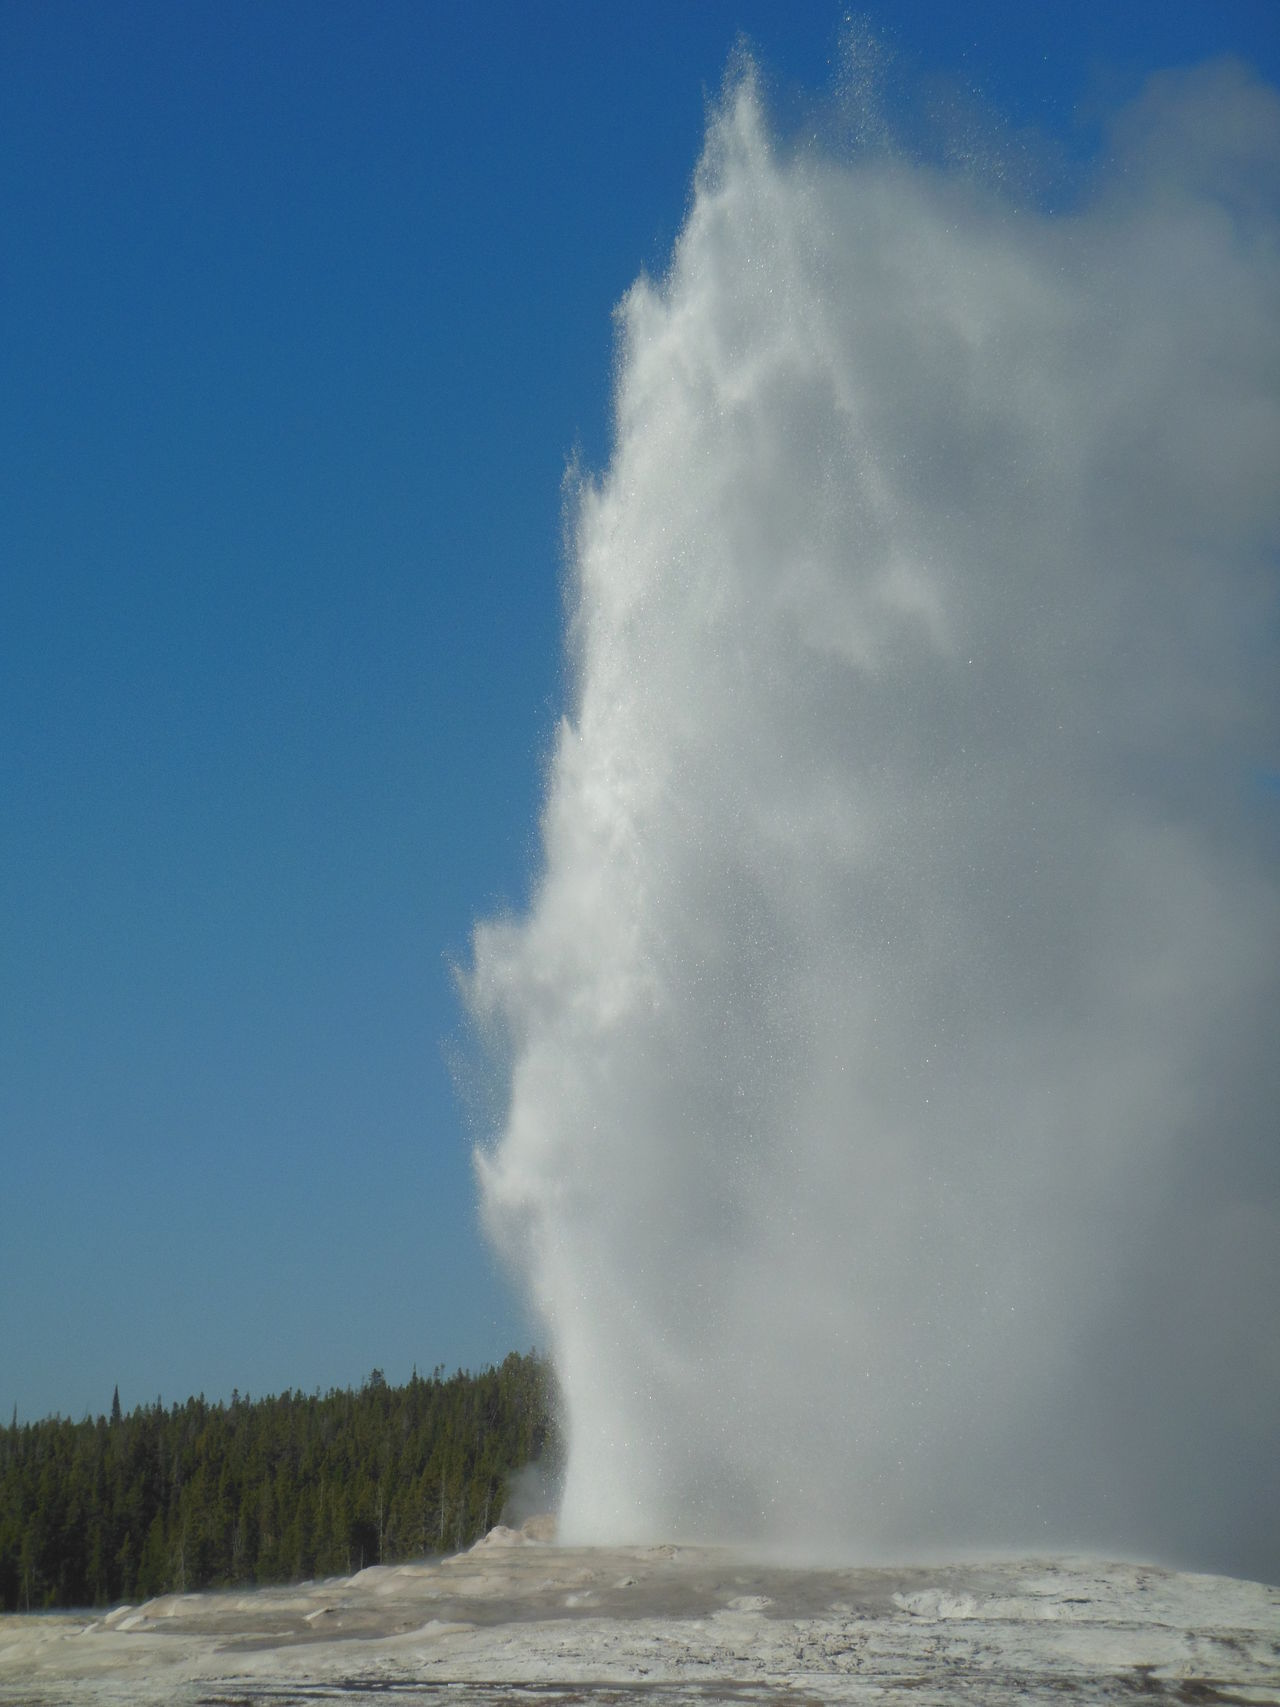 Beauty In Nature Erupting Geology Geysir Nature Old Faithful Physical Geography Power In Nature Splashing Spraying USA Water Yellowstone National Park